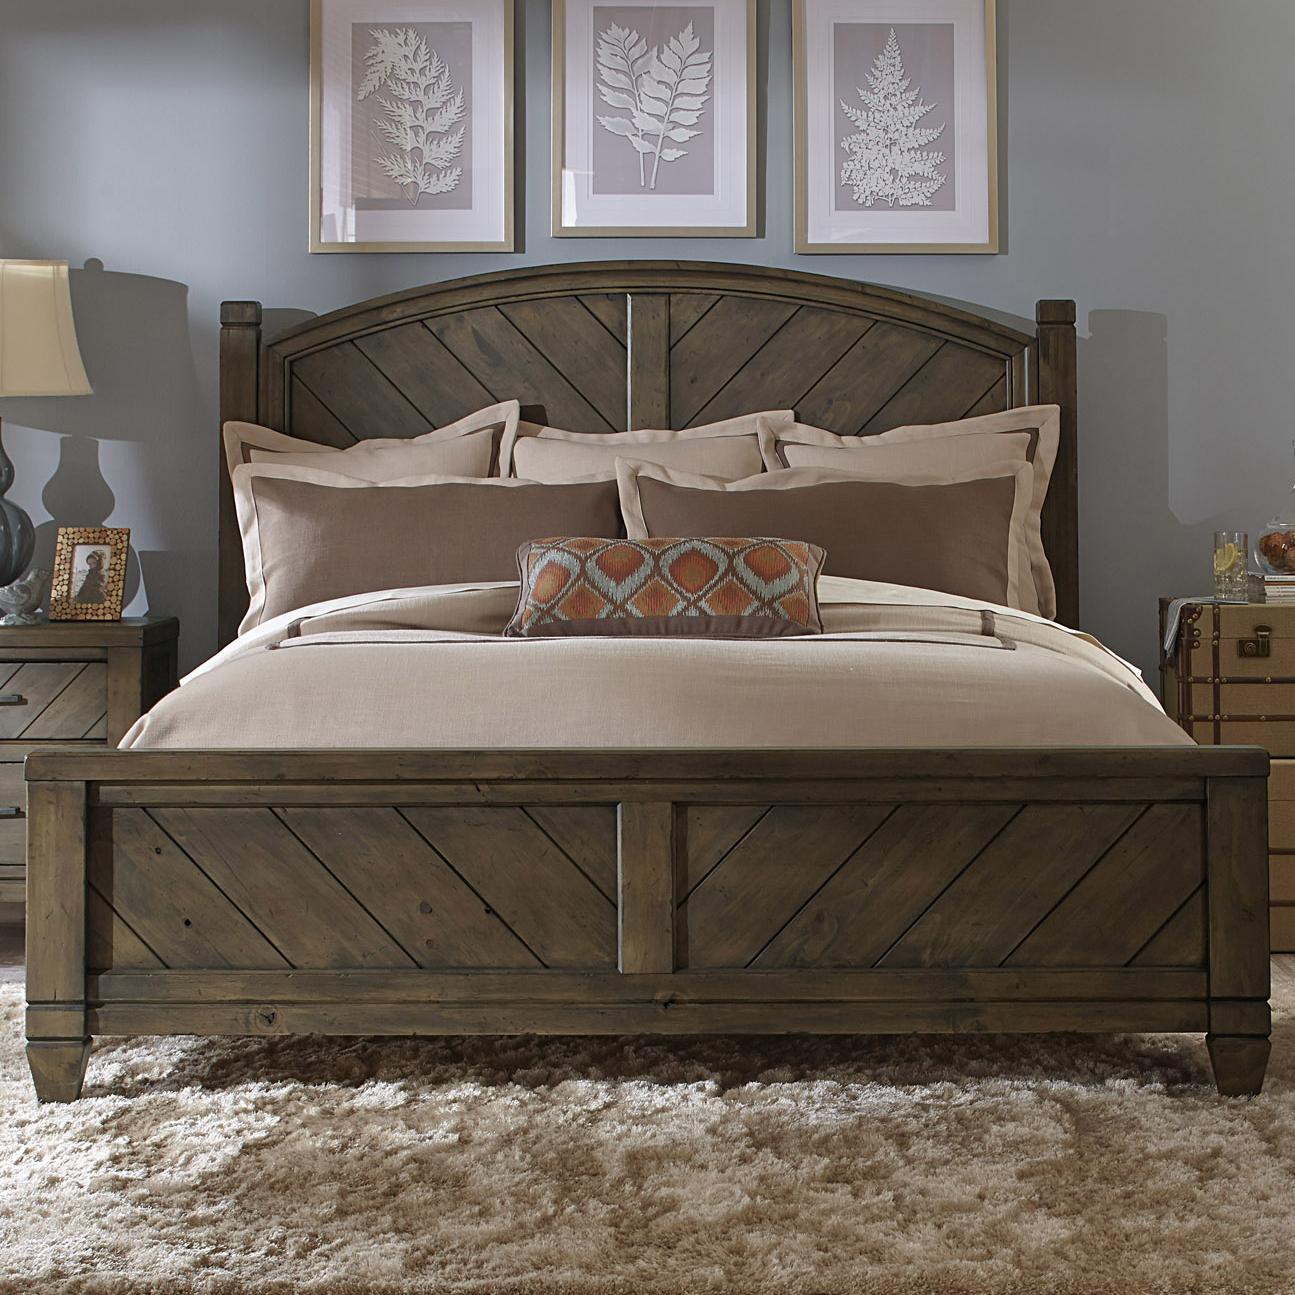 Liberty Furniture Modern Country Queen Poster Bed - Item Number: 833-BR-QPS